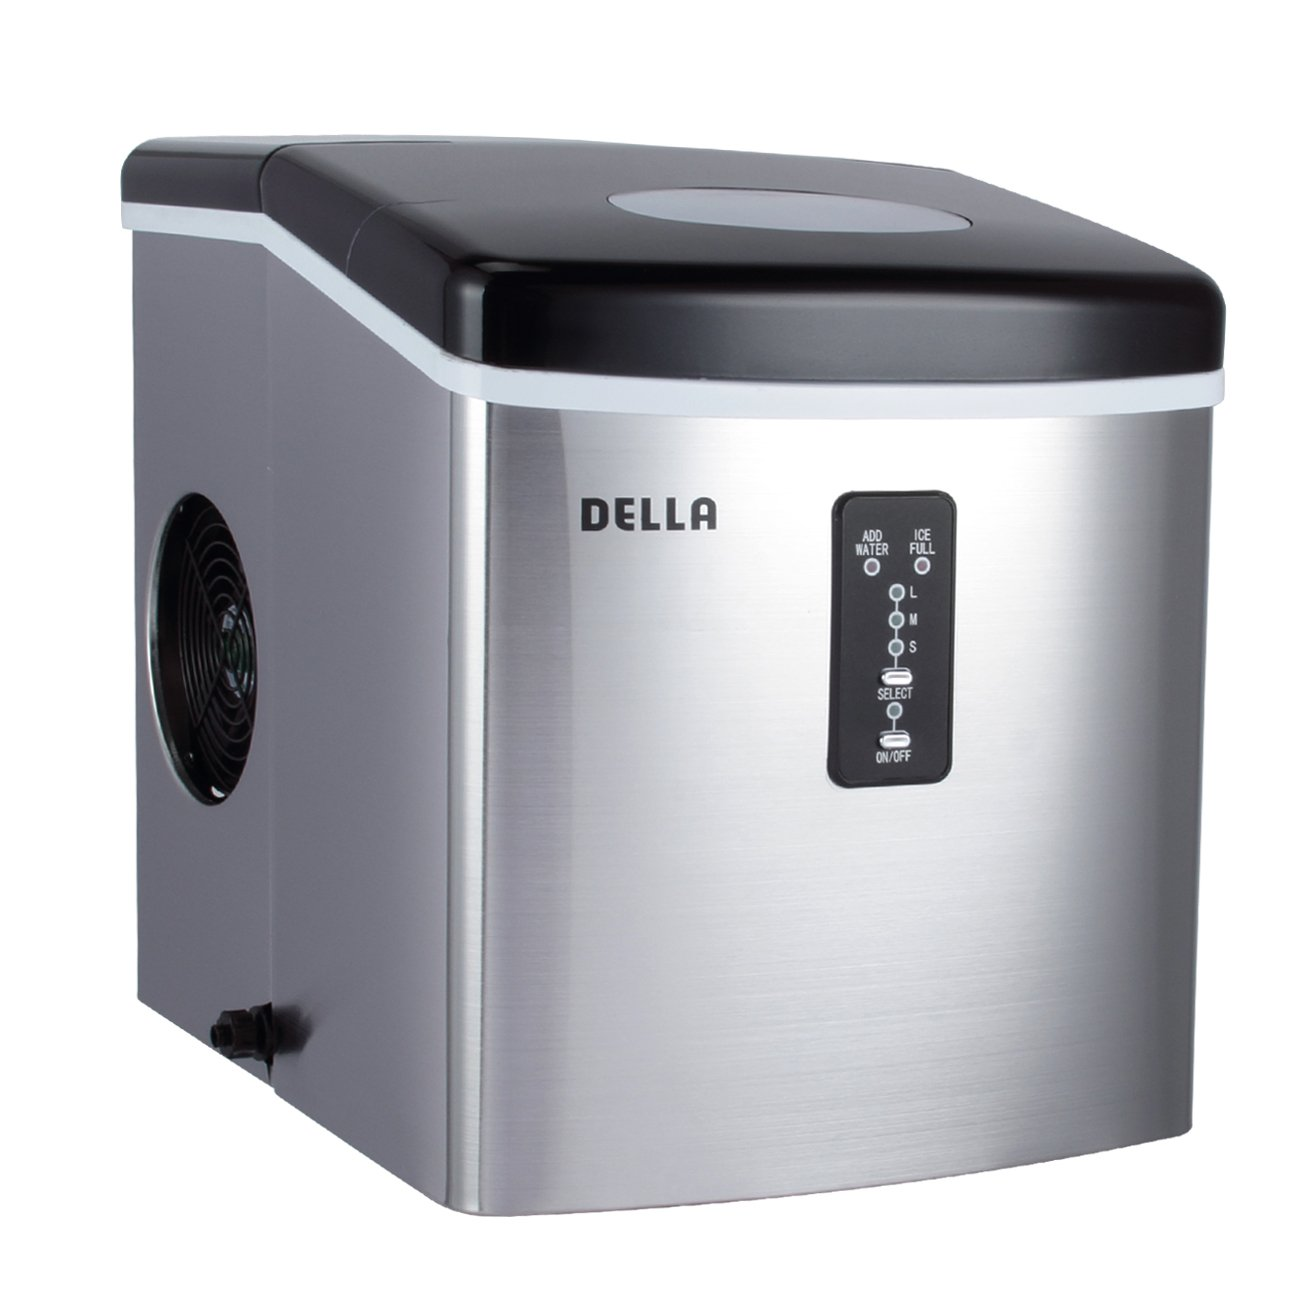 DELLA© Stainless Steel Ice Maker 35lb Per Day Portable Countertop Freestanding Icemaker